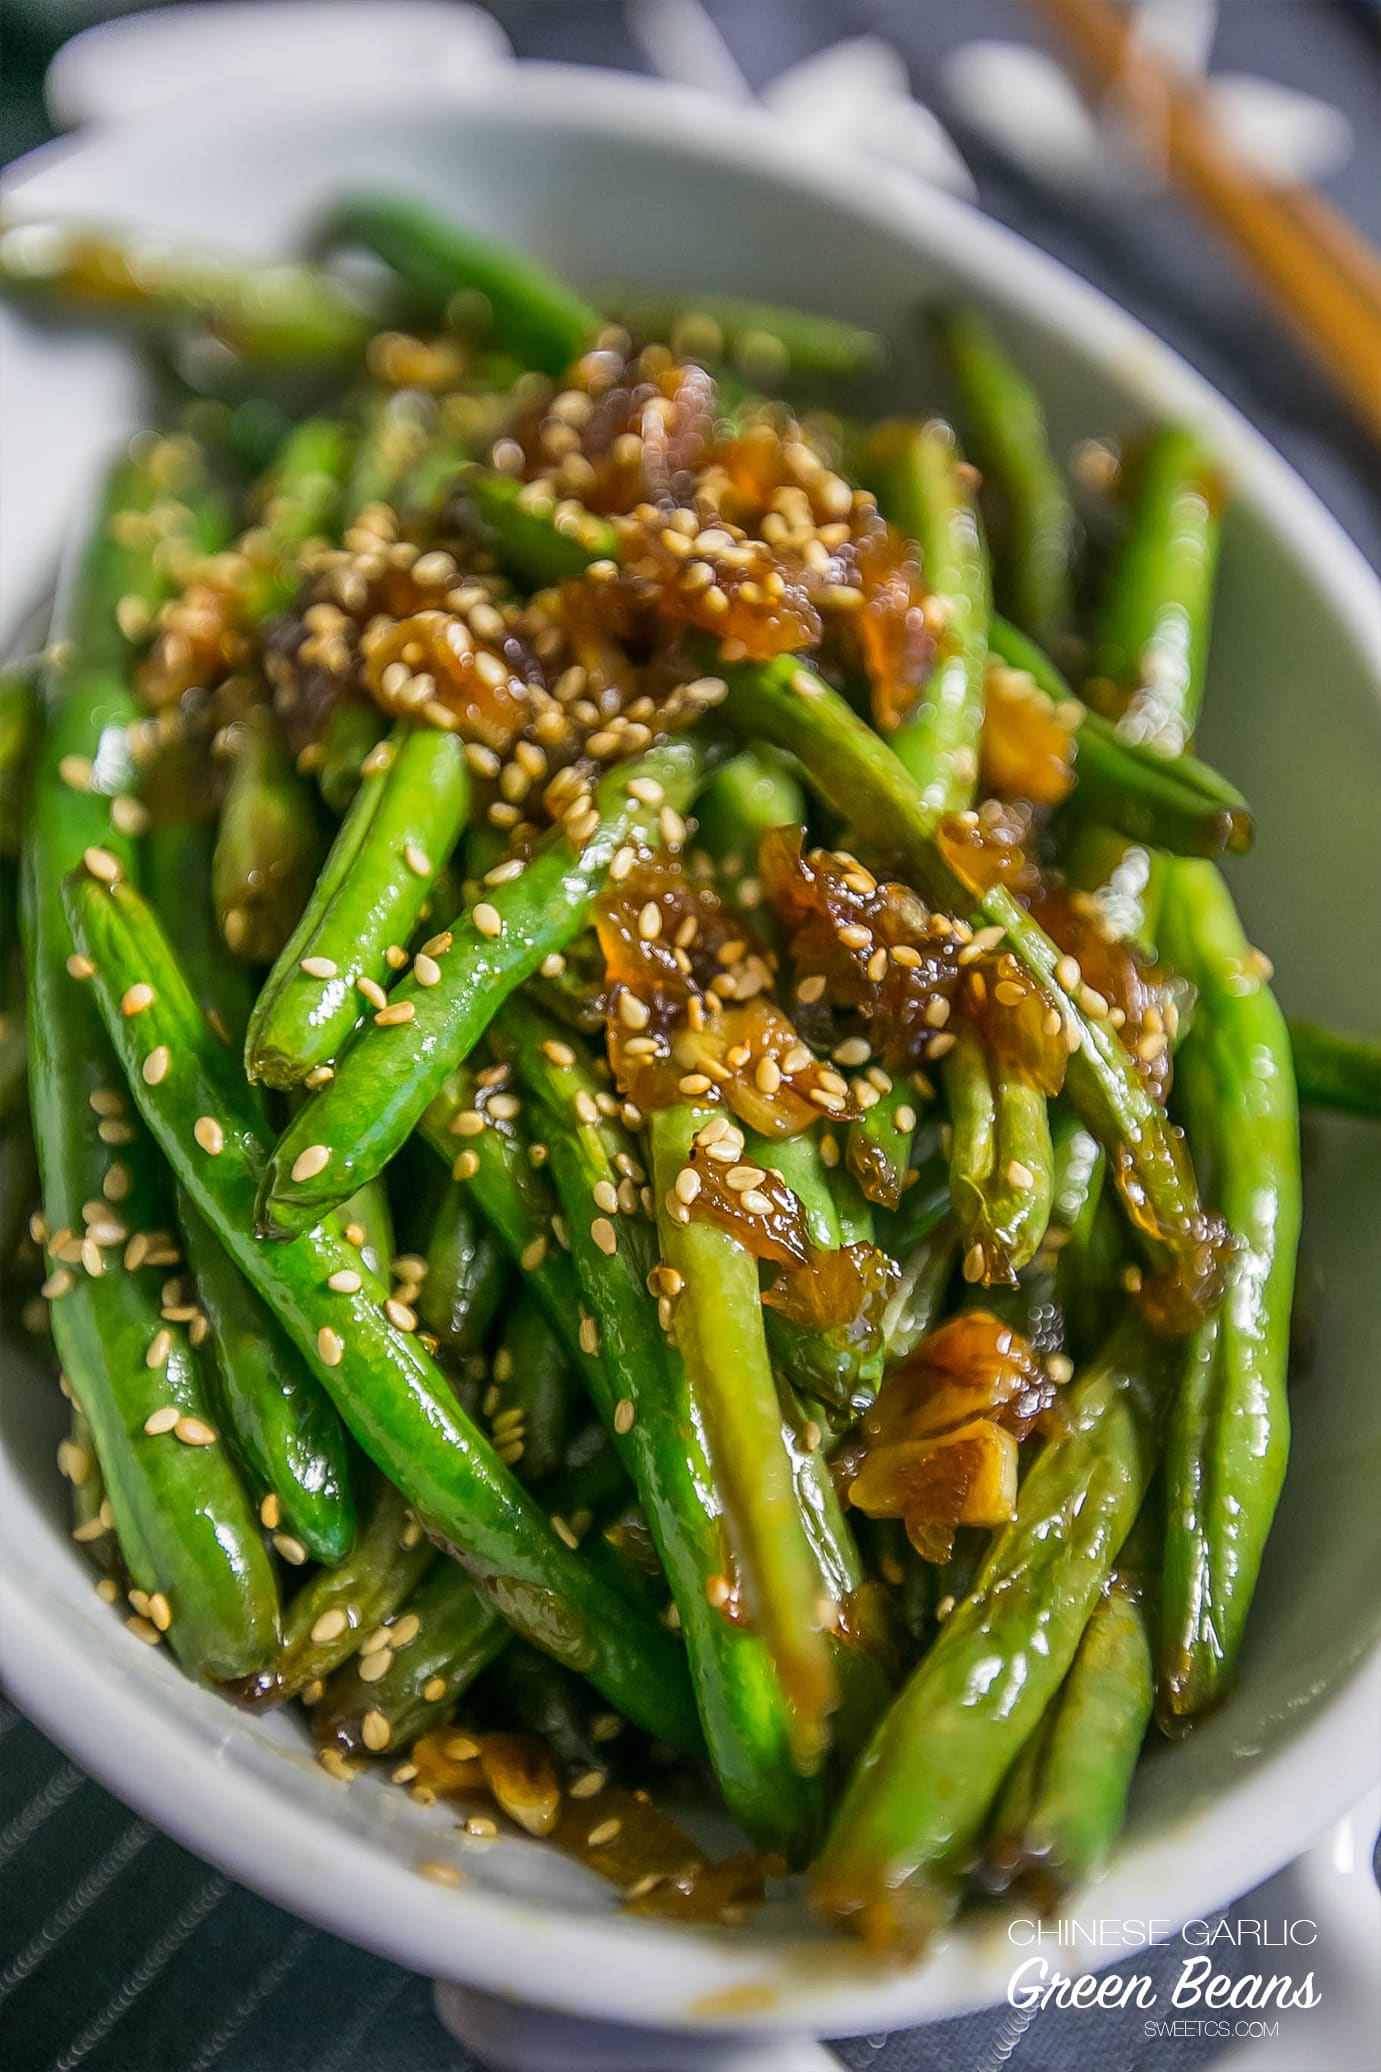 Garlic chinese style green beans sweet cs designs for Style green